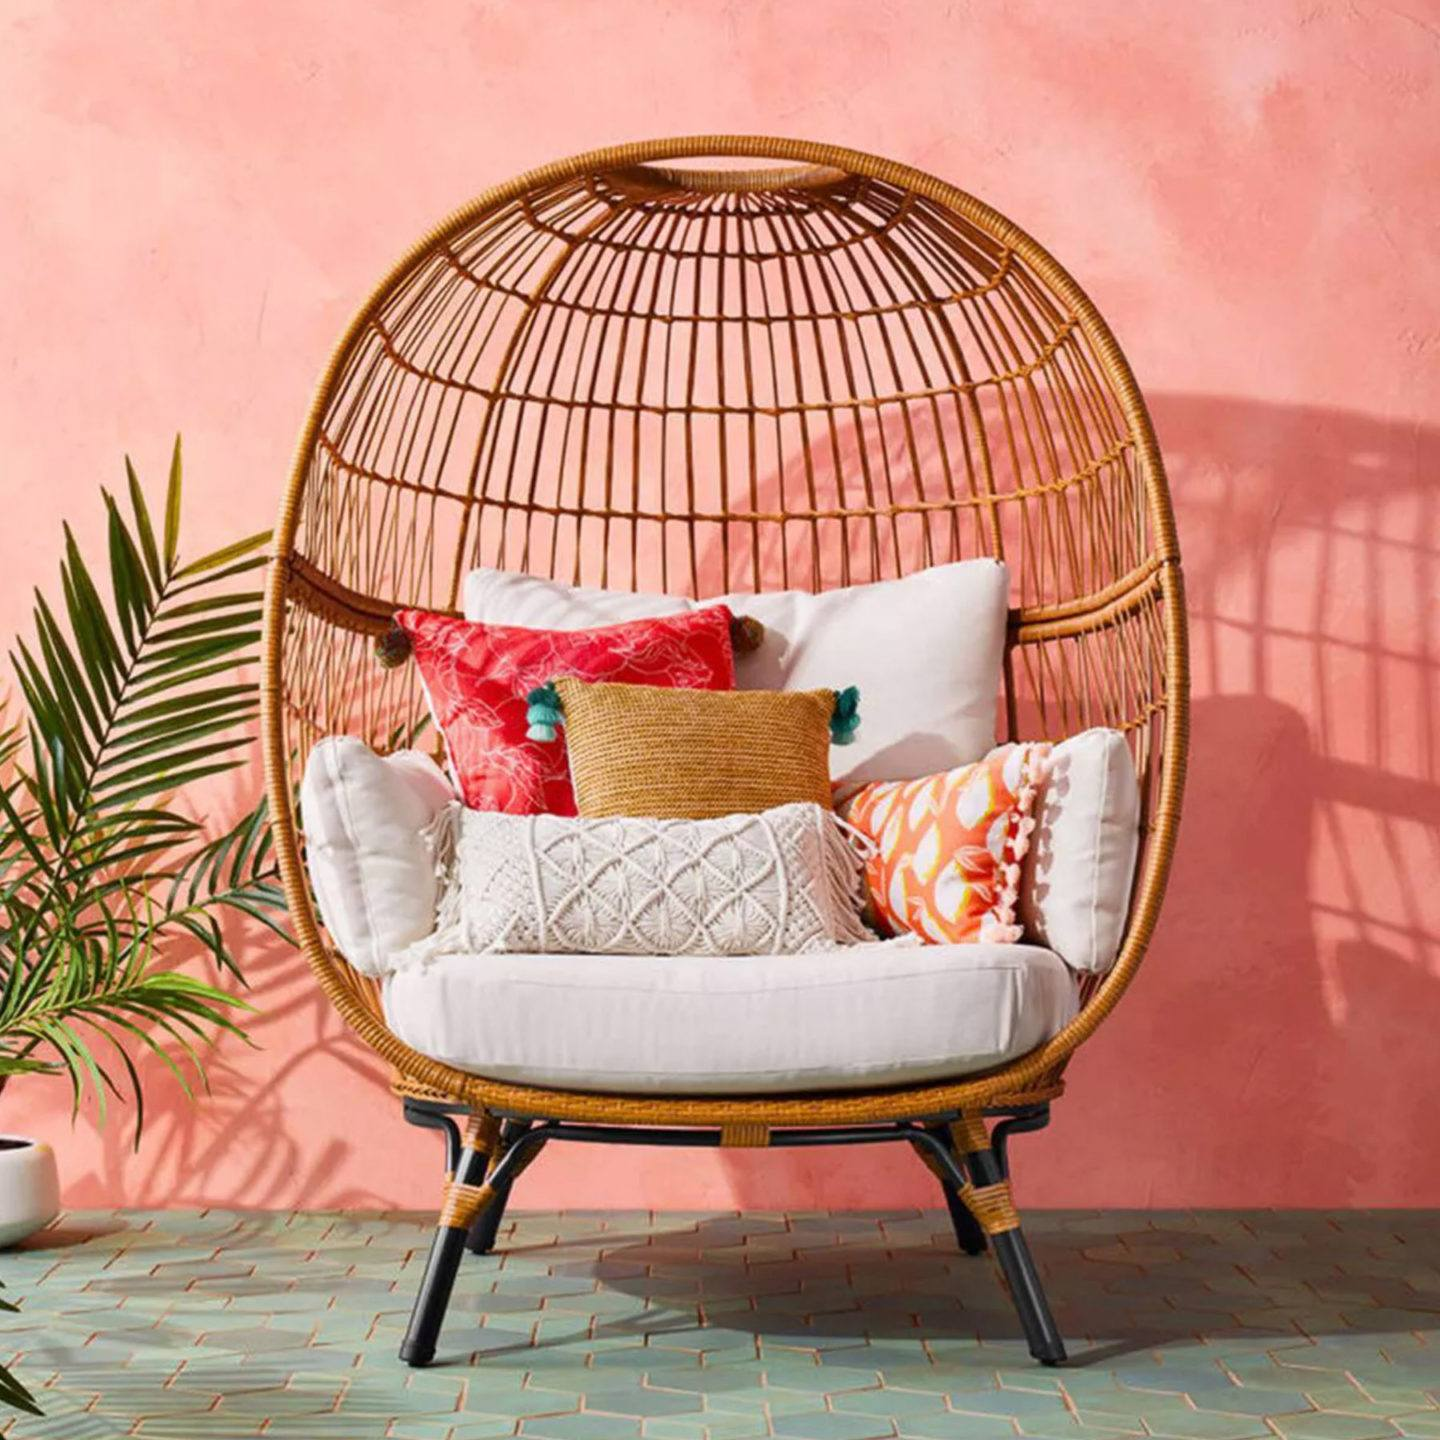 affordable patio egg chairs, by lifestyle blogger What The Fab